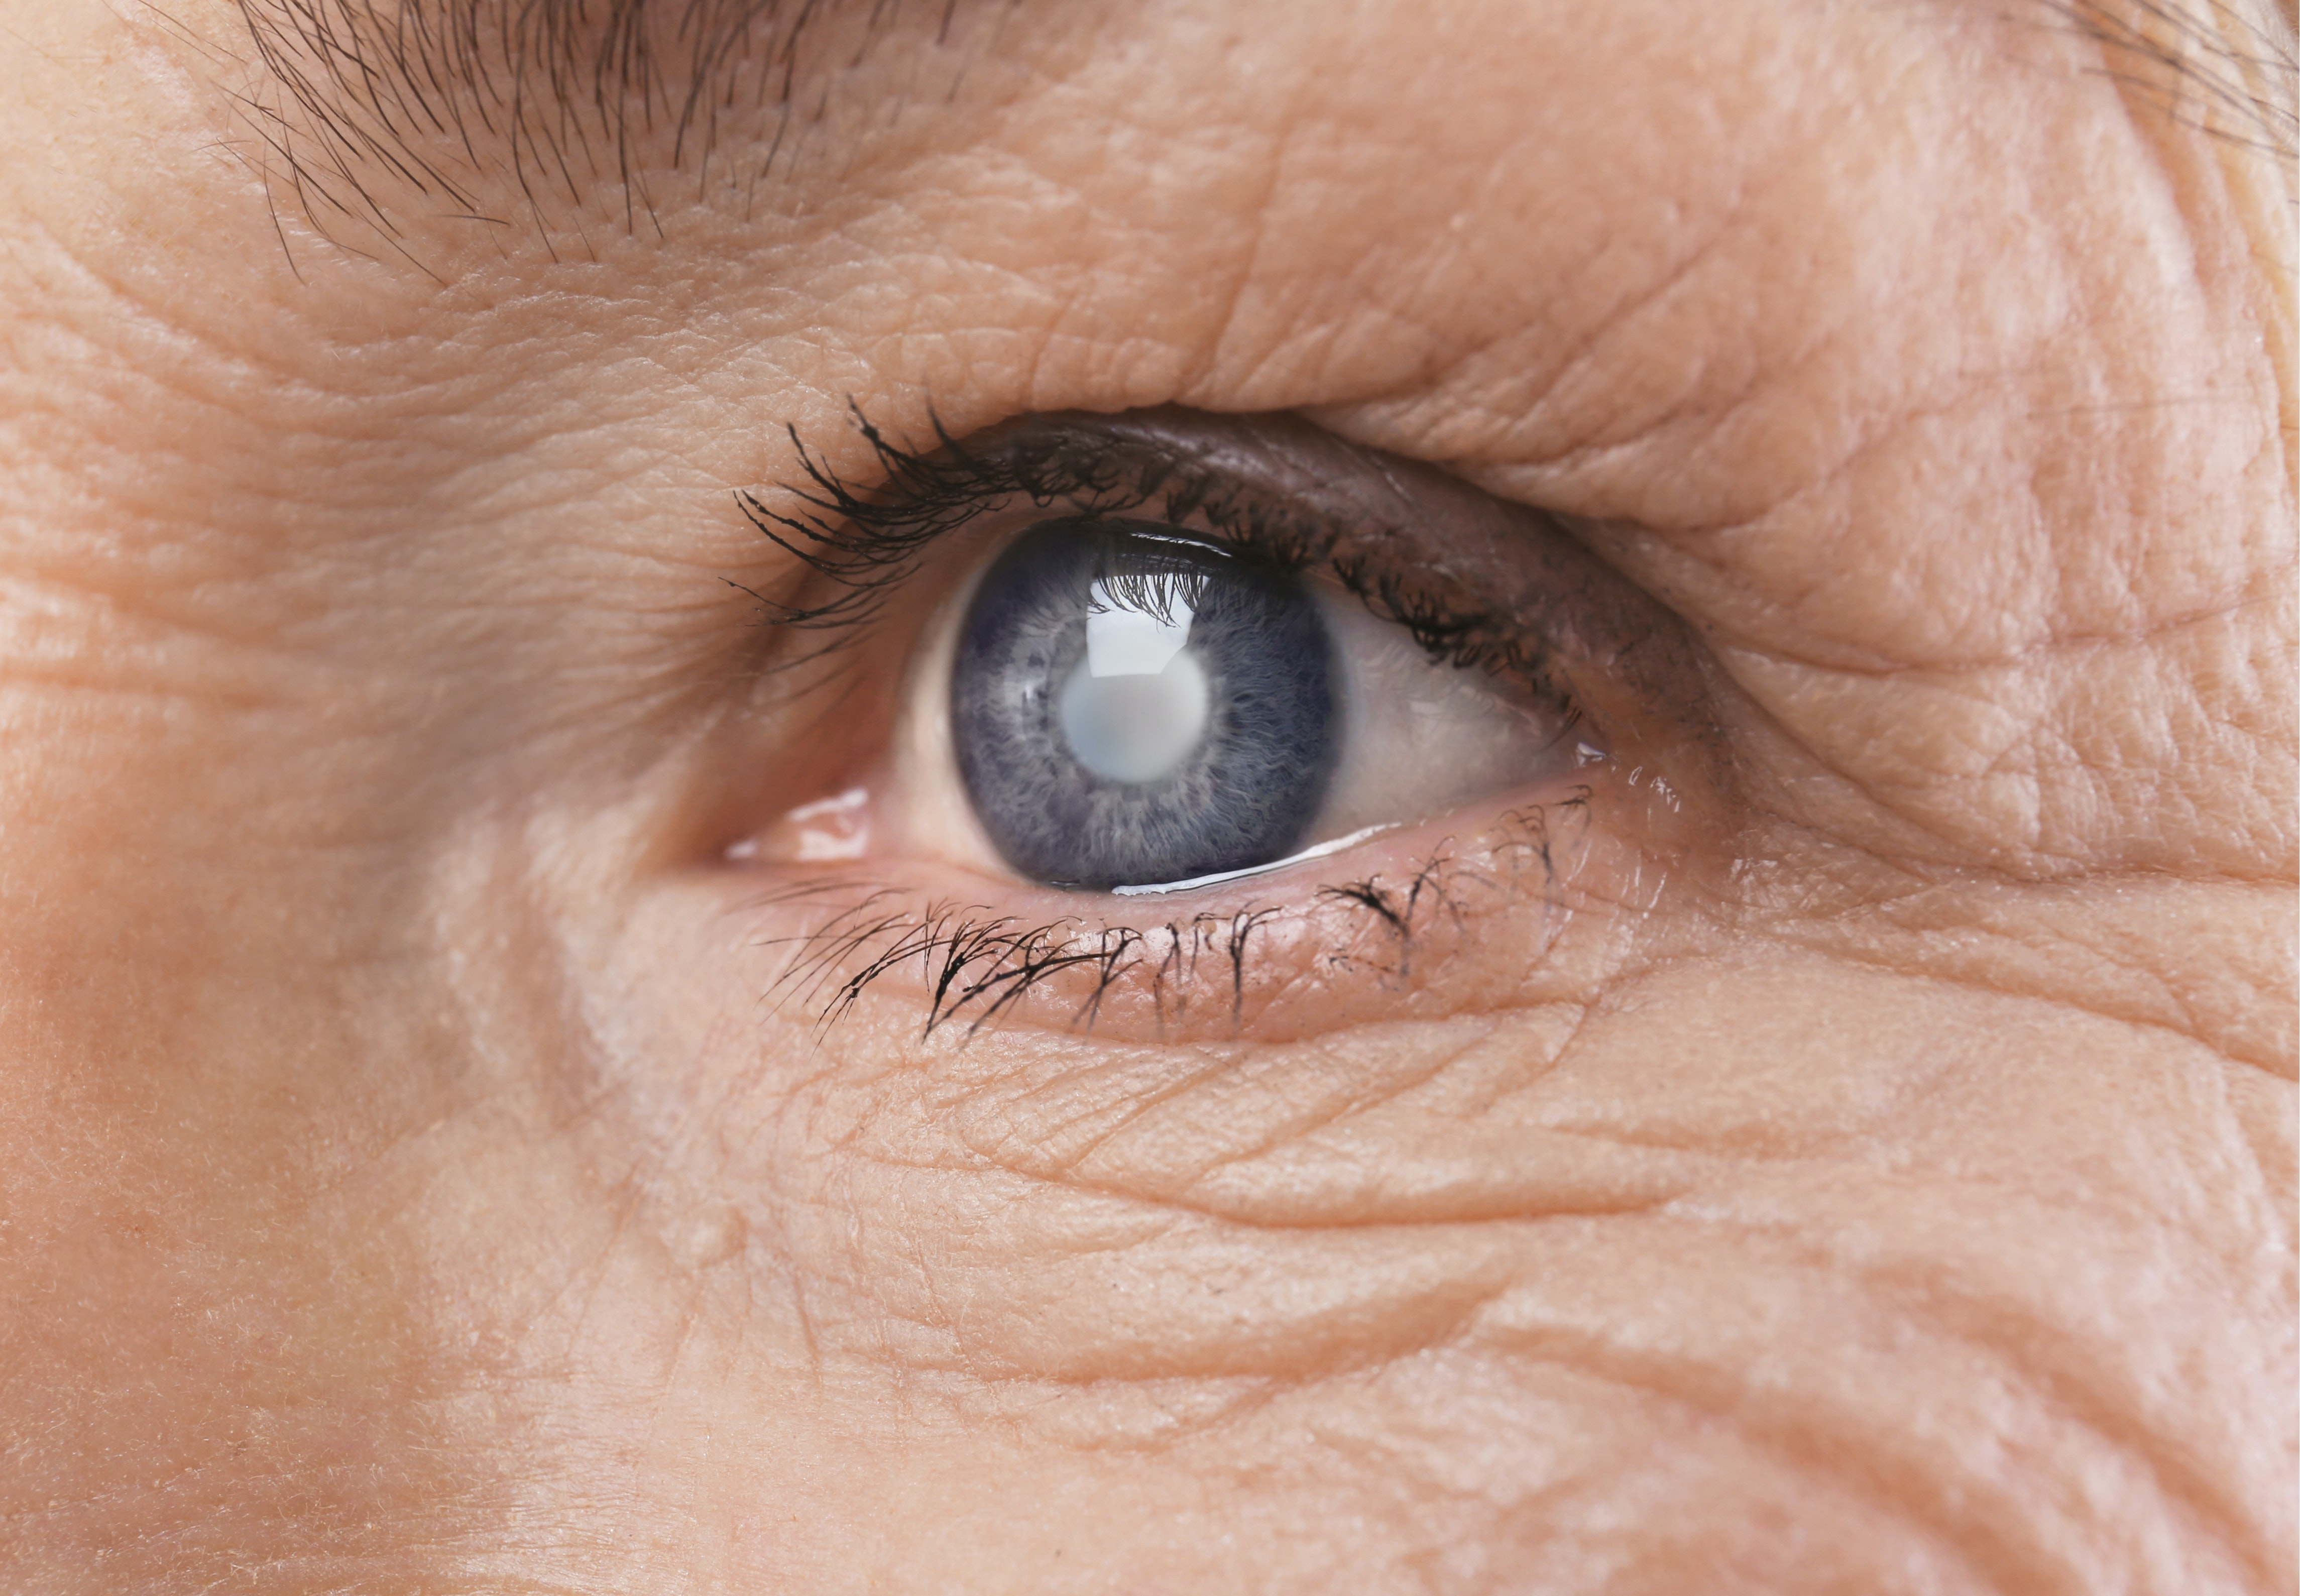 An image depicting a person suffering from cataract symptoms